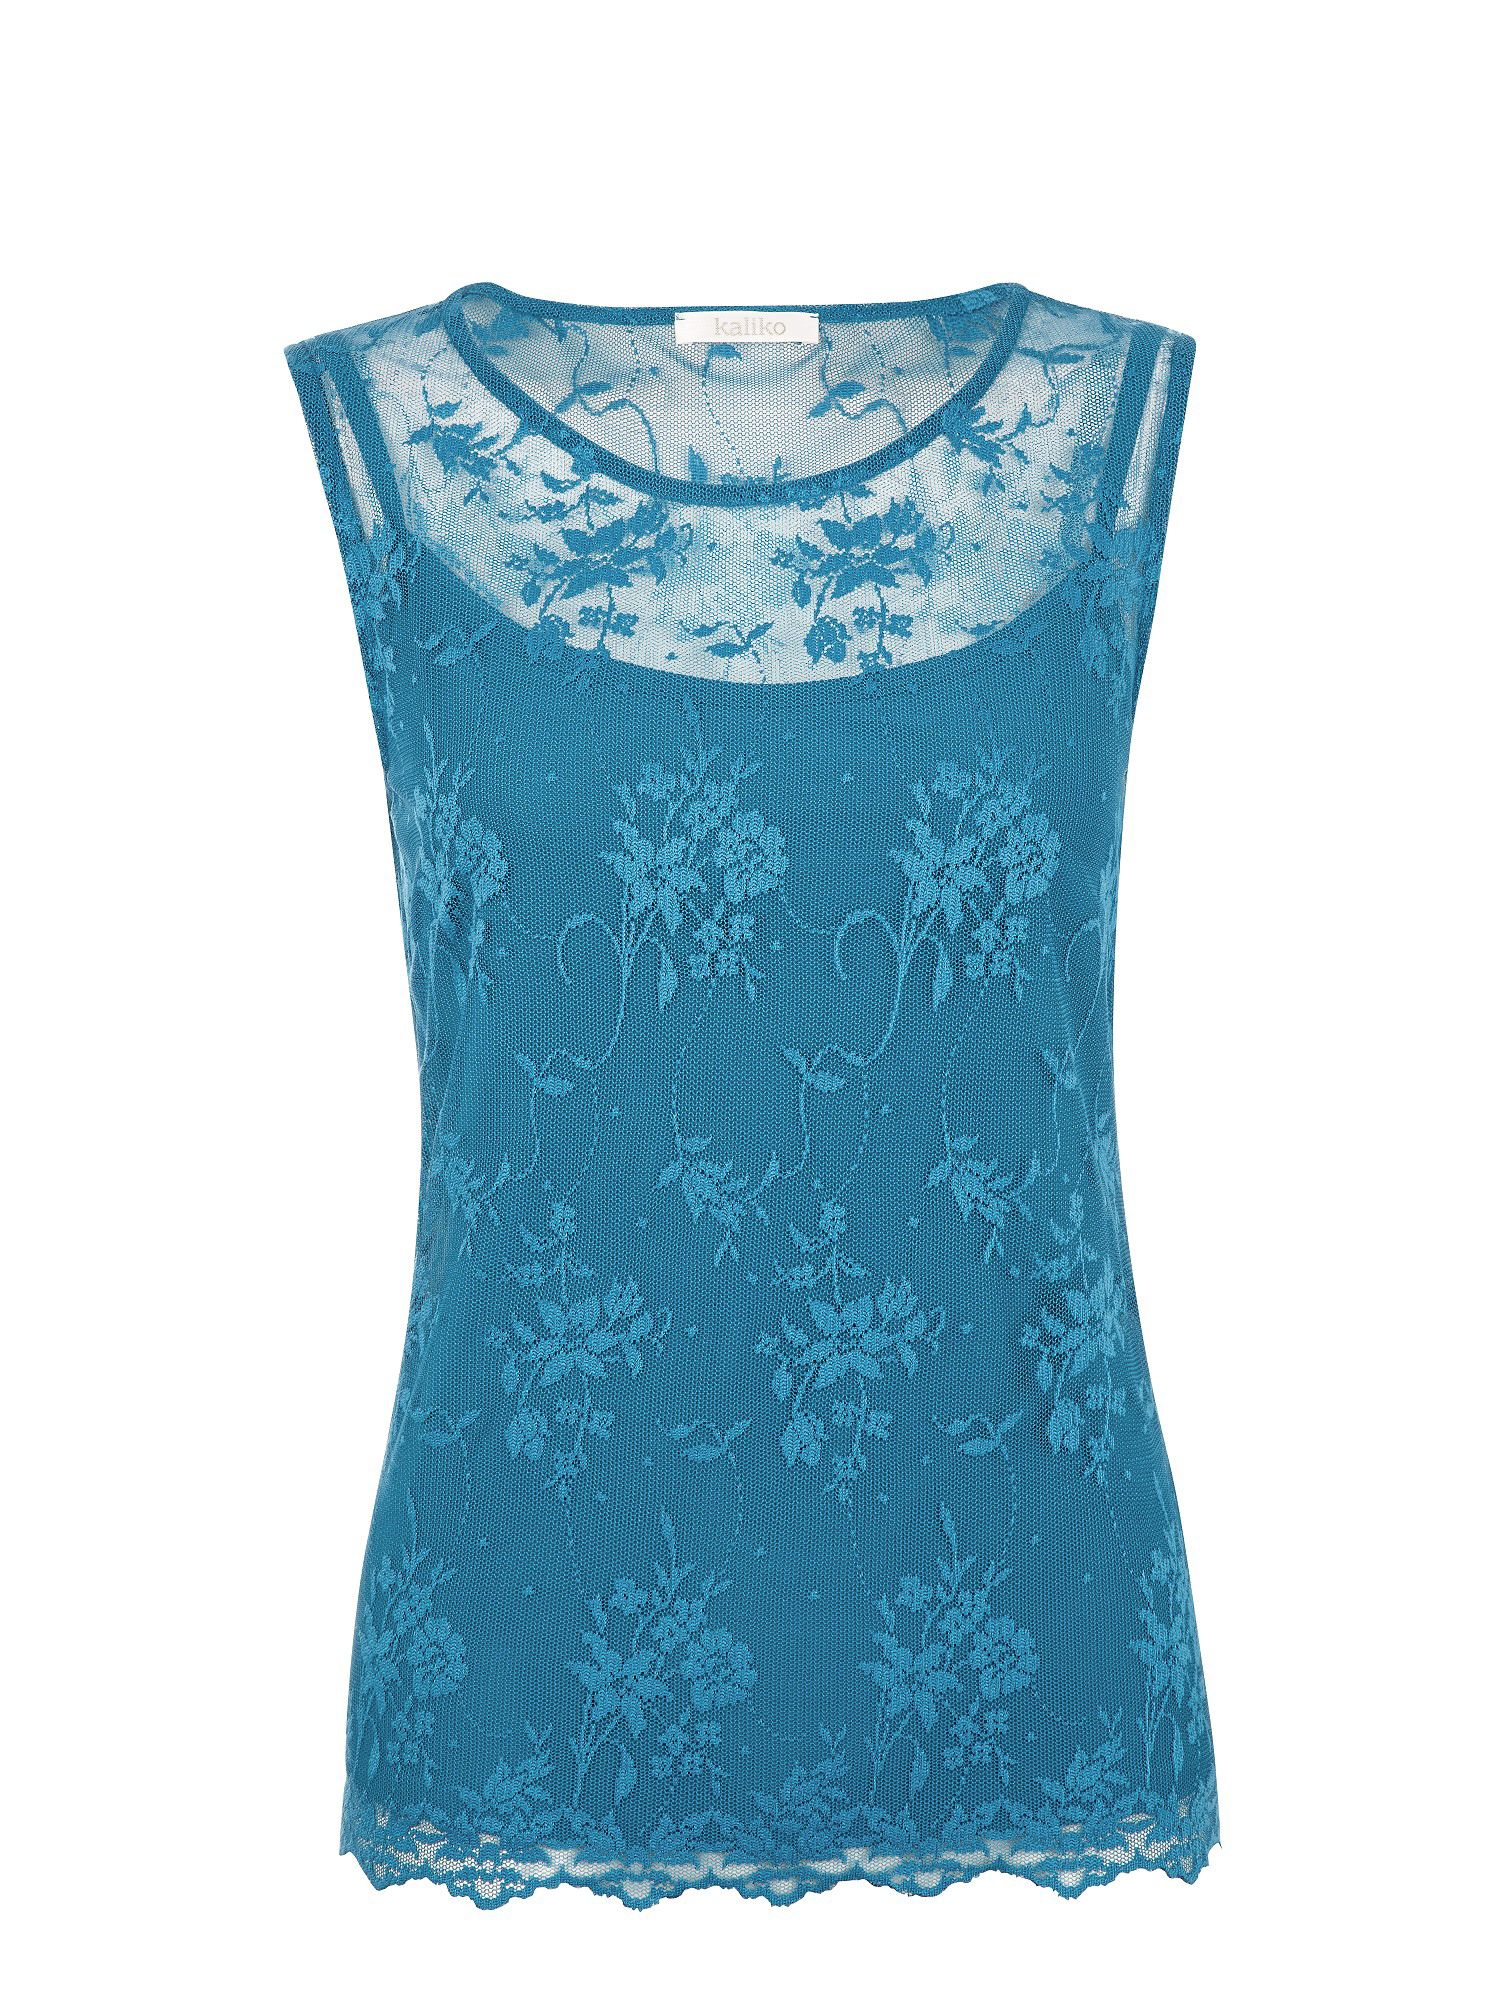 Teal lace top and lace trim cami